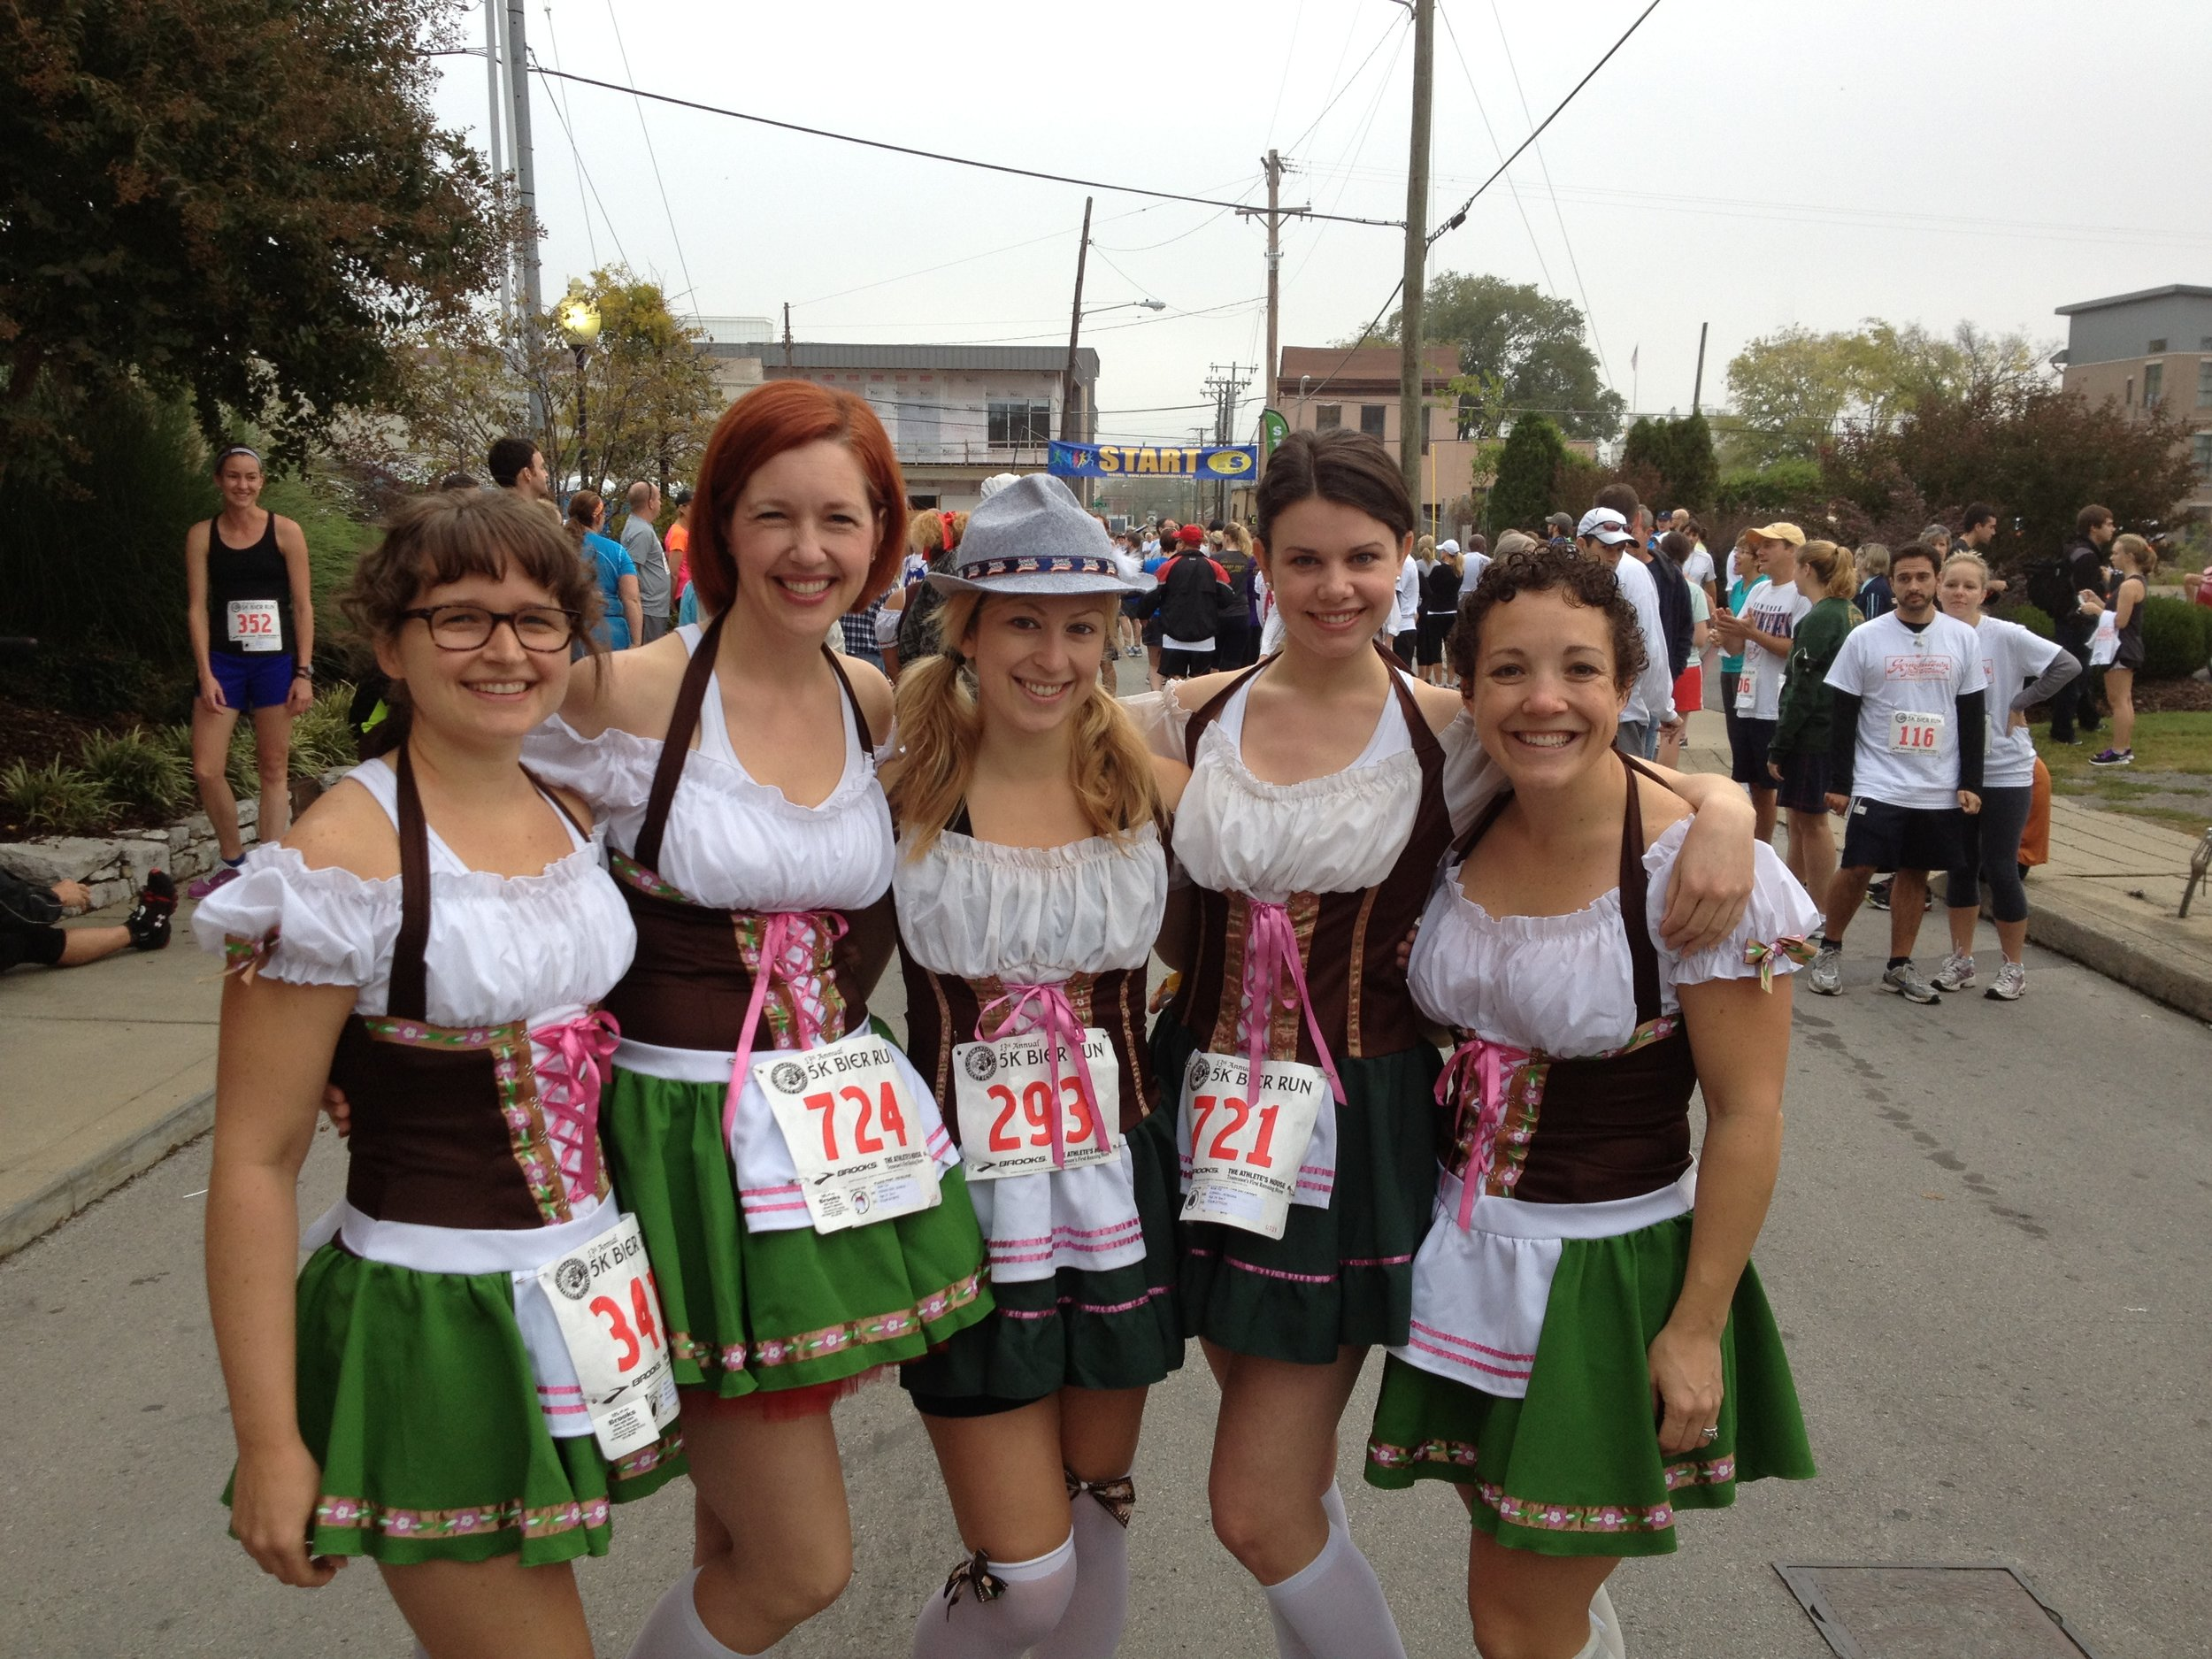 Bier Girls, October 2012